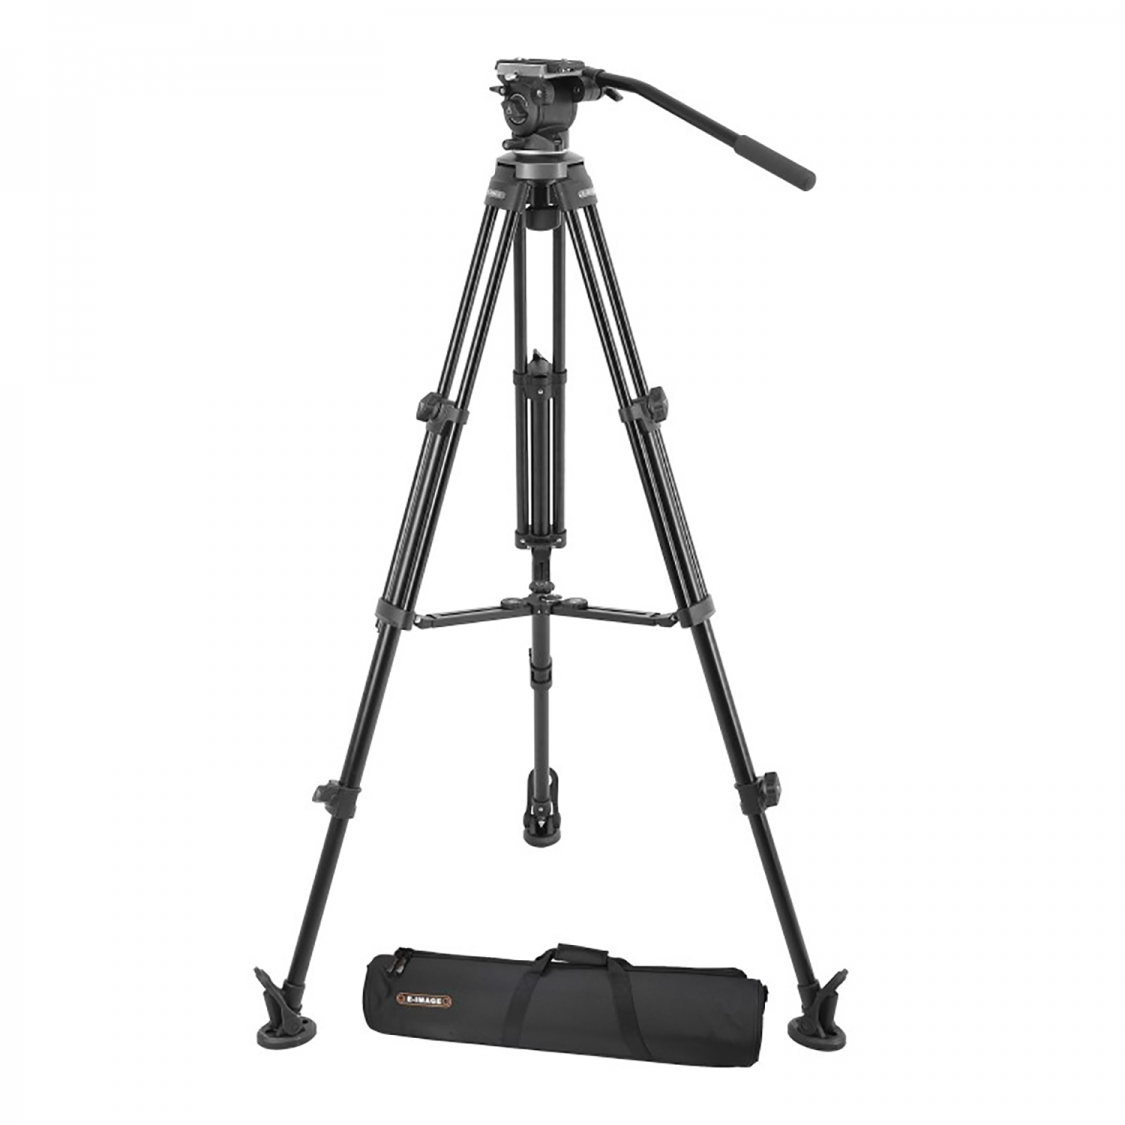 Ikan EK630 Aluminum Tripod 75mm Video Kit